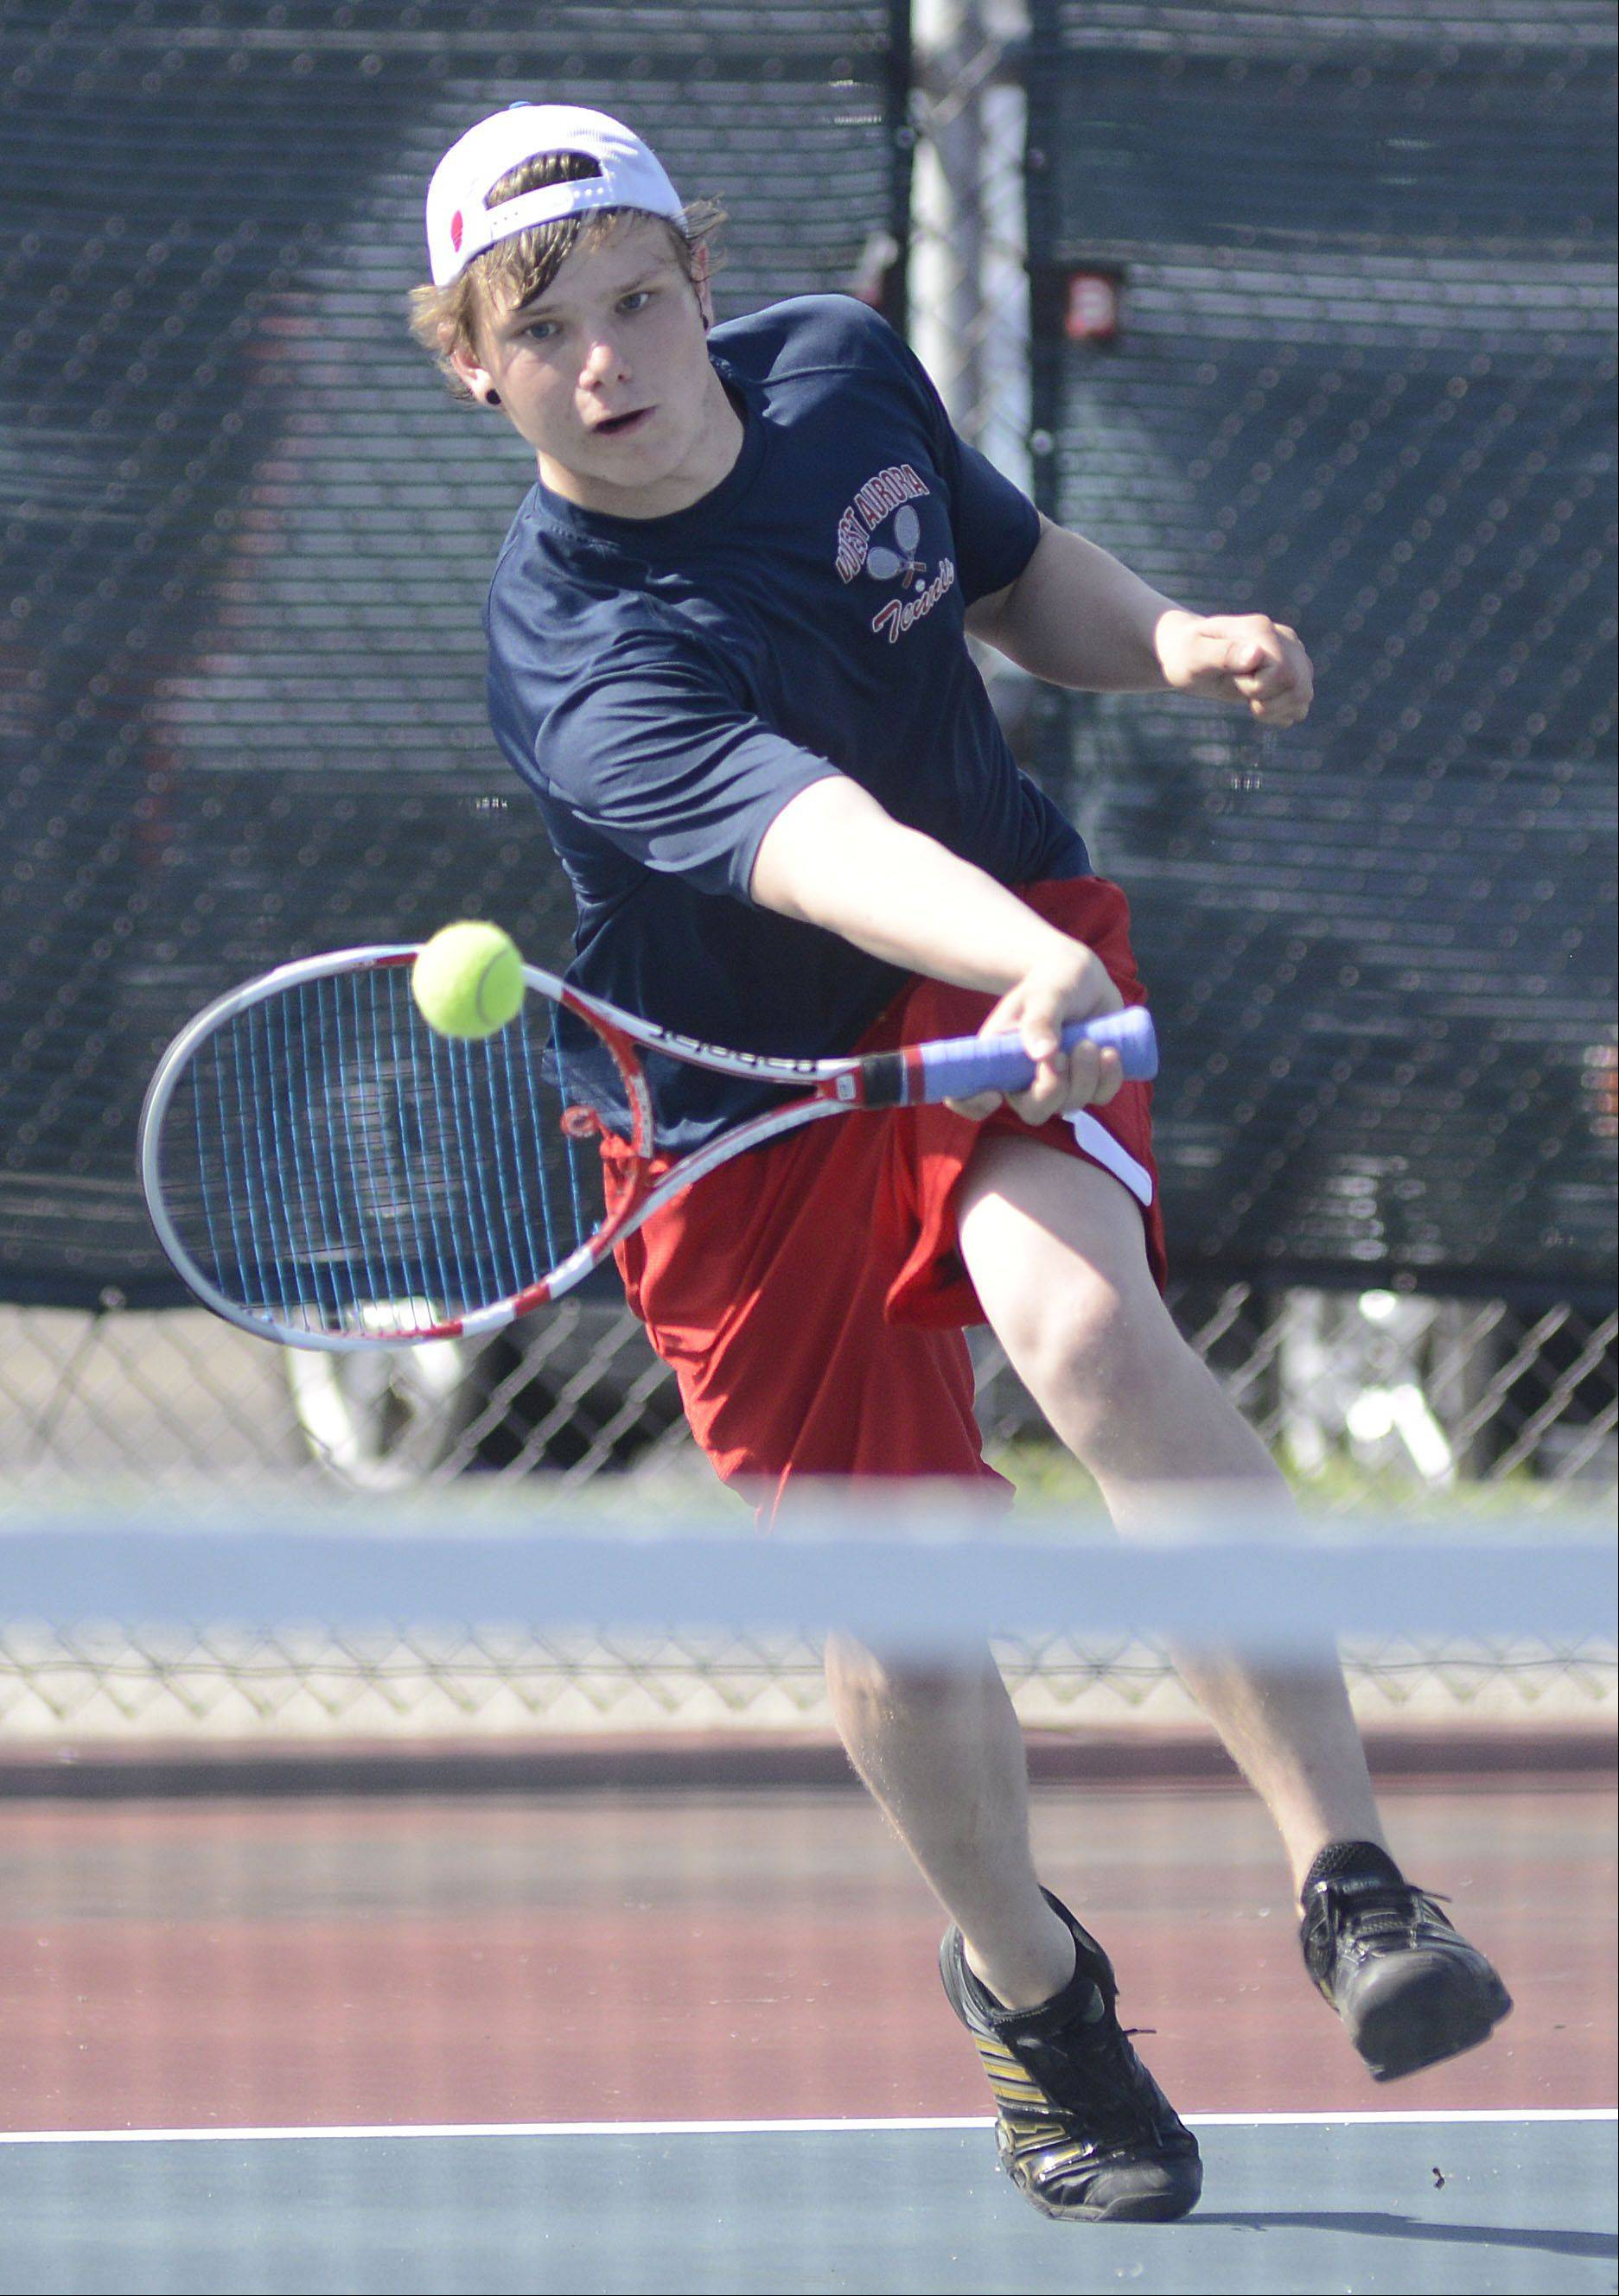 West Aurora's Nick Kuntzi in the first singles match vs. Marmion's John King at West Aurora High School on Saturday, April 27.